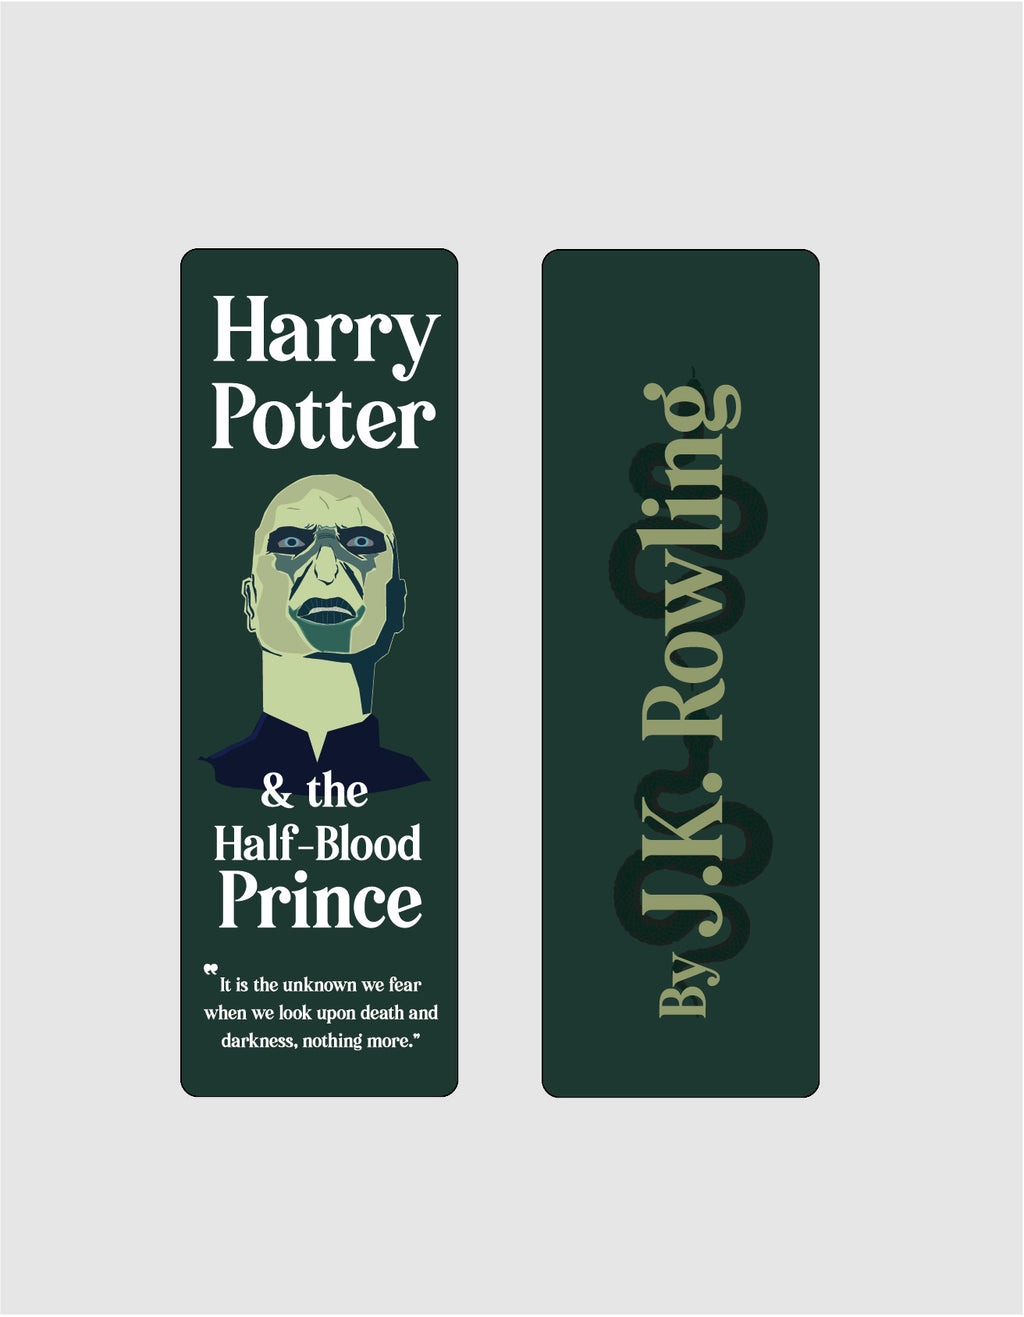 Harry Potter and the Half-Blood Prince by J.K. Rowling Bookmark